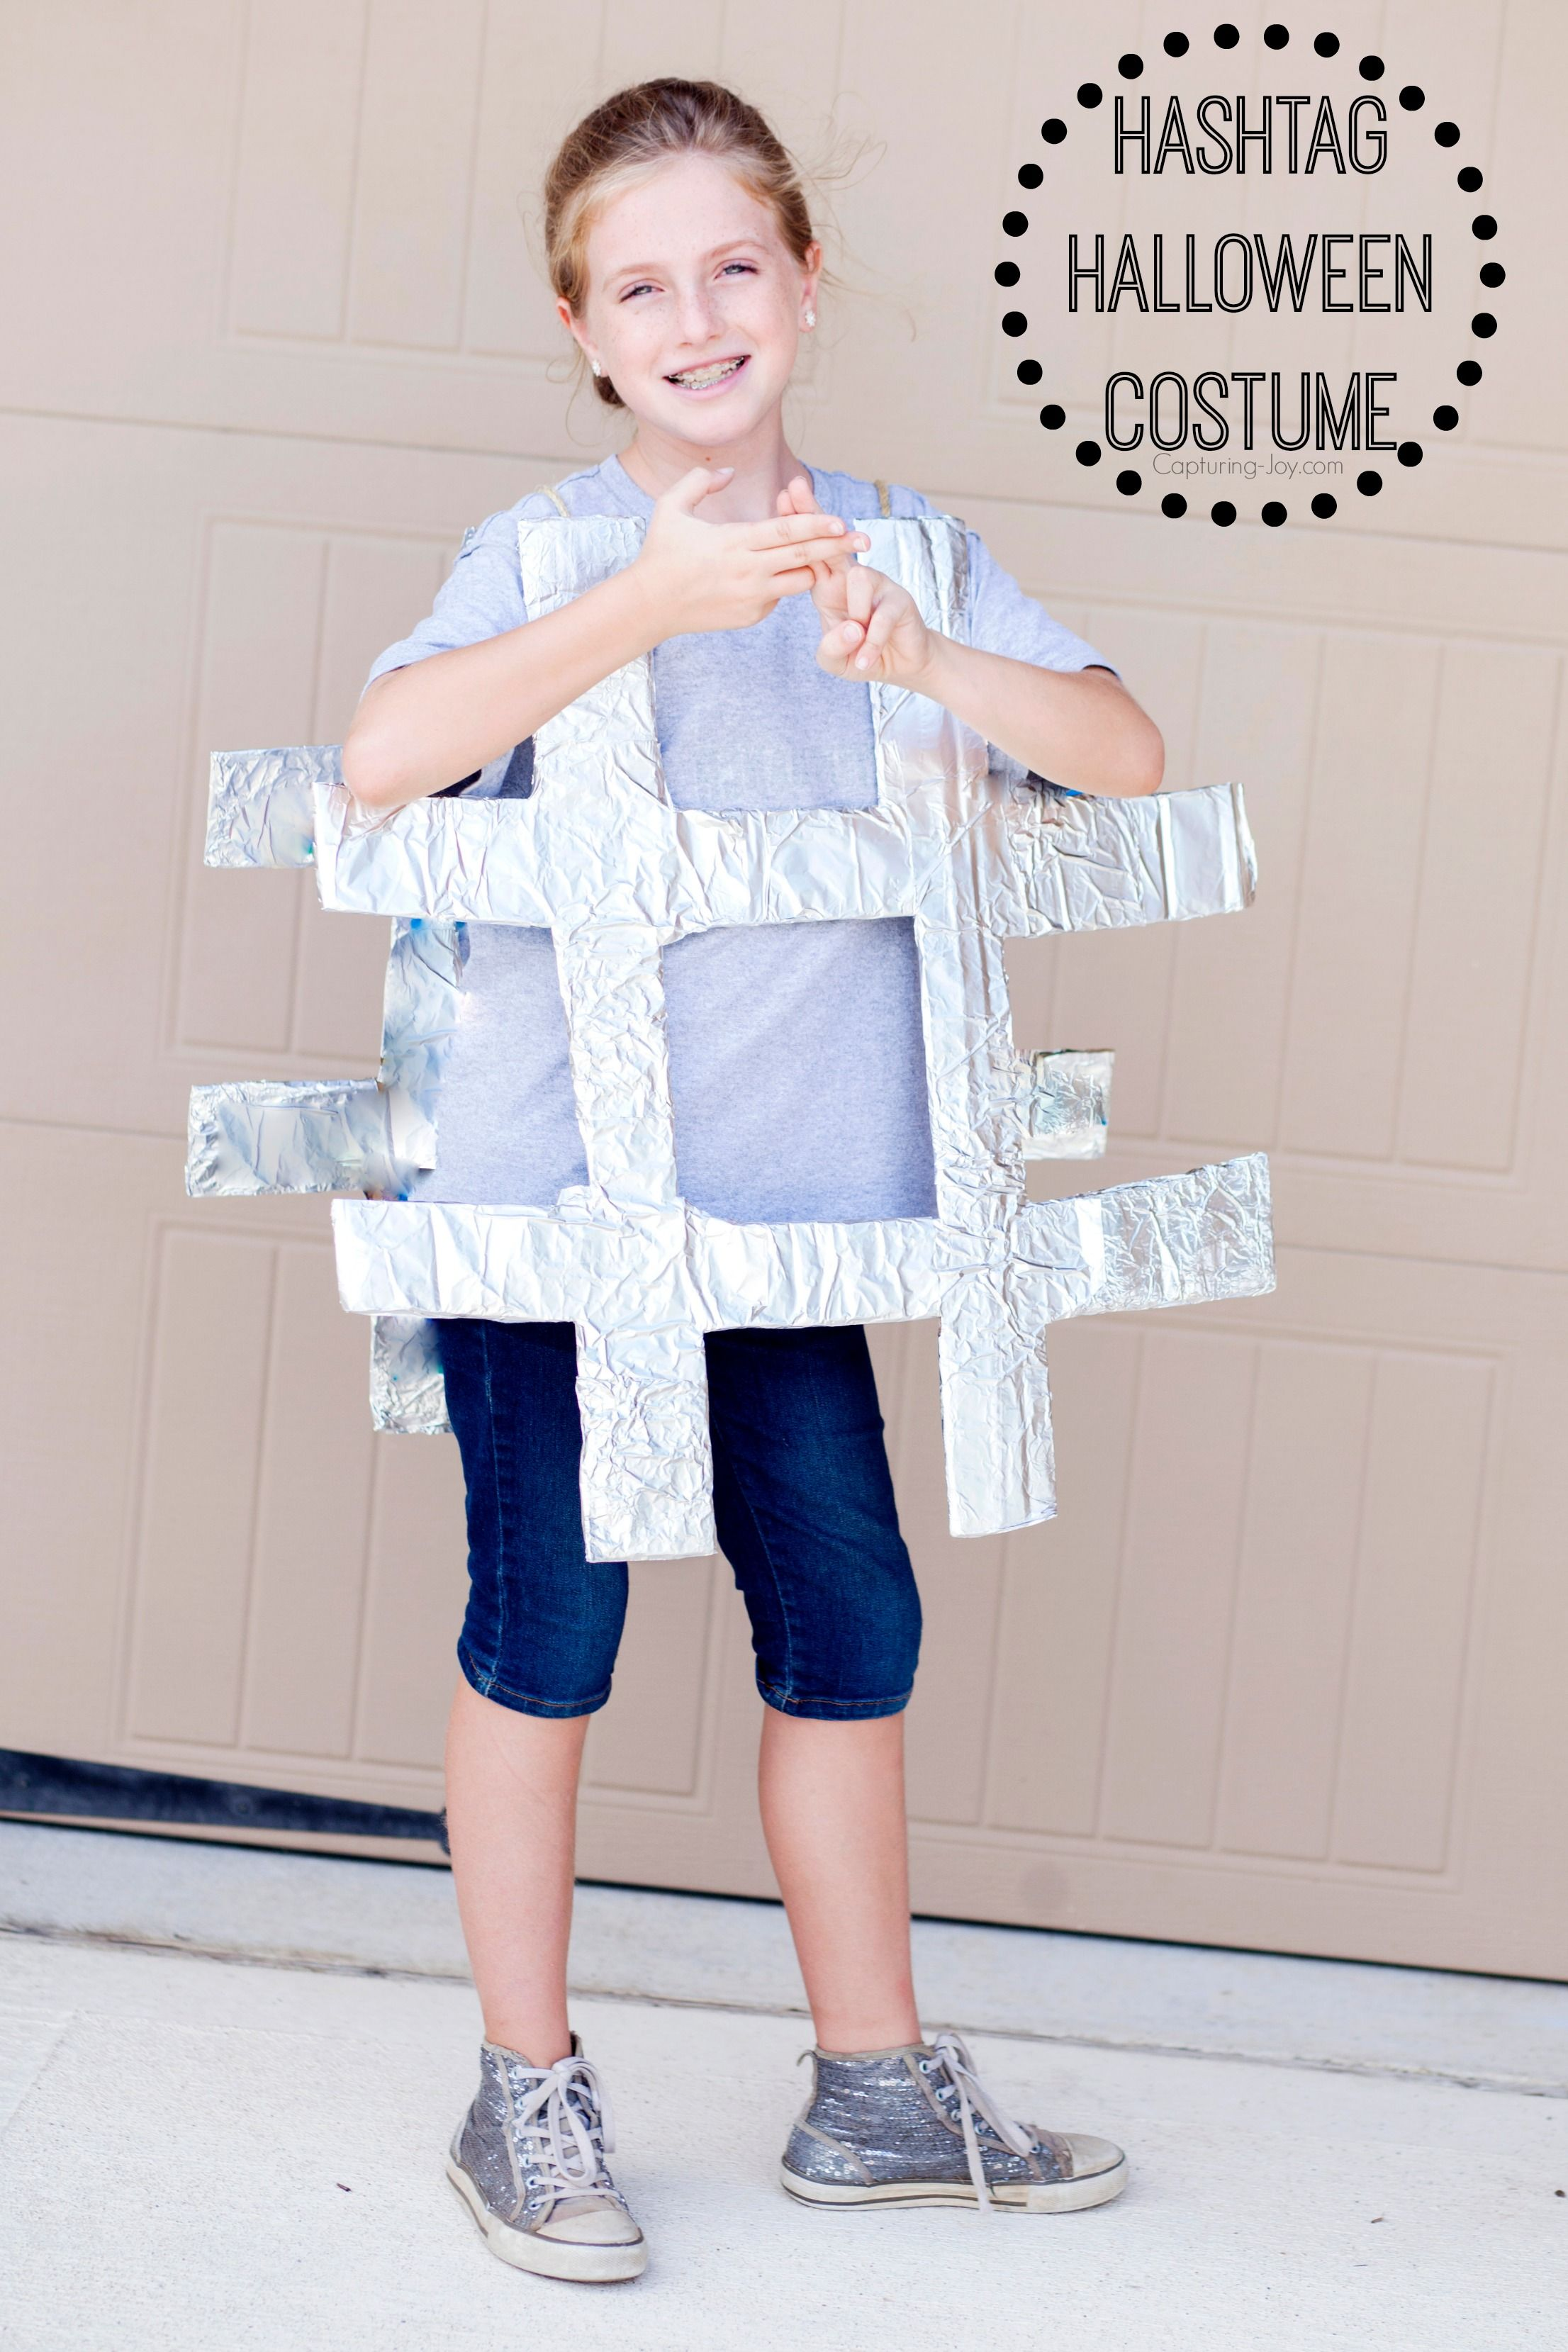 DIY Hashtag Halloween Costume (With images) Clever